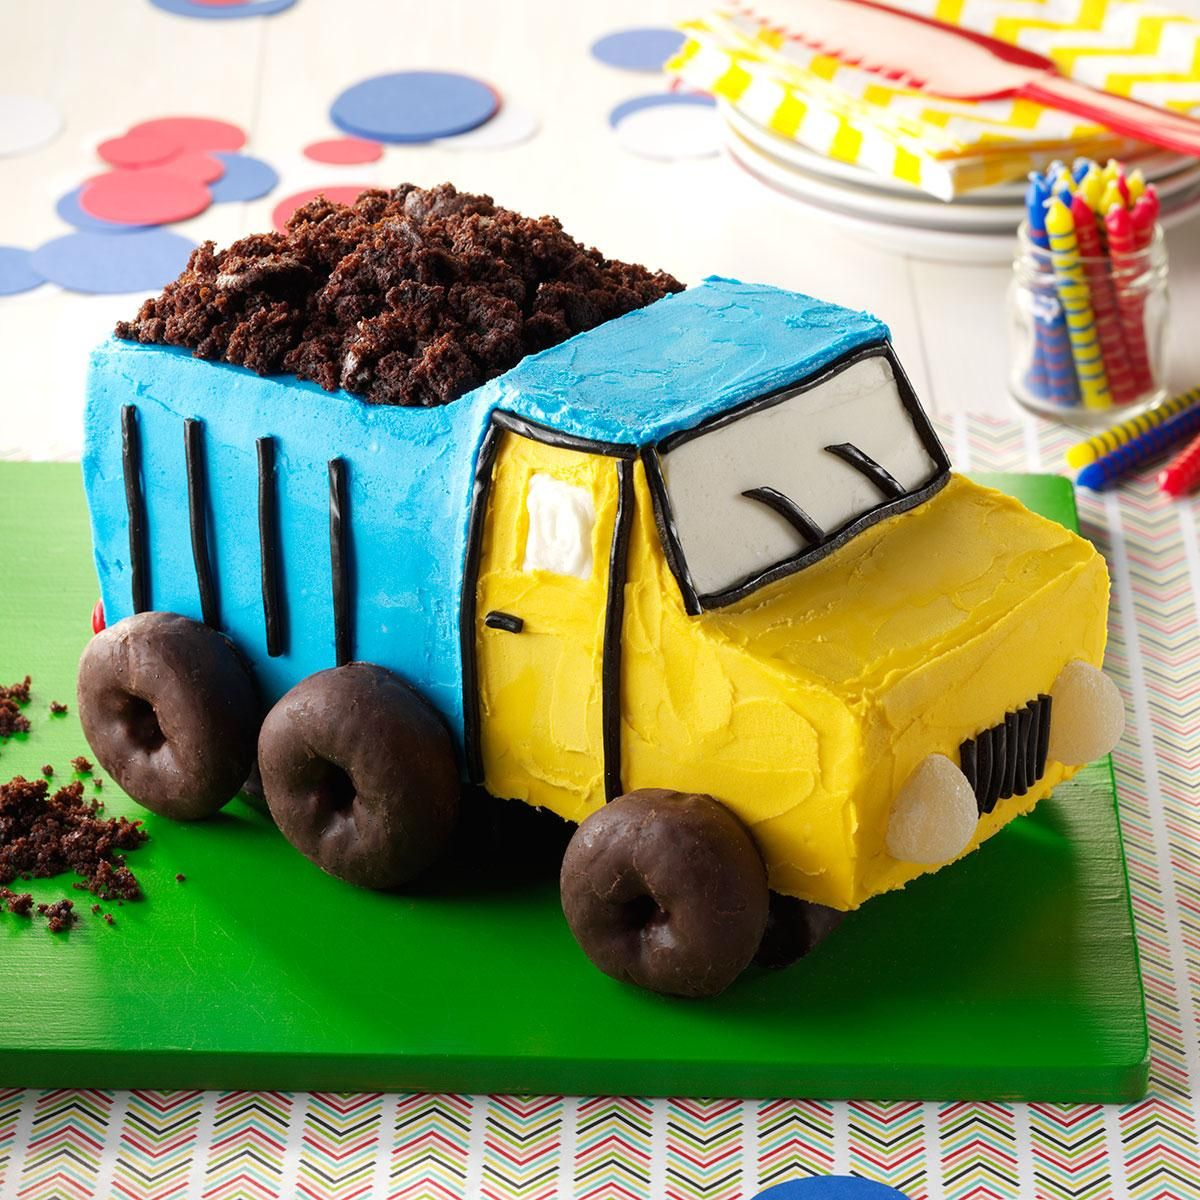 Phenomenal Dump Truck Cake Recipe With Images Dump Truck Cakes Truck Funny Birthday Cards Online Elaedamsfinfo